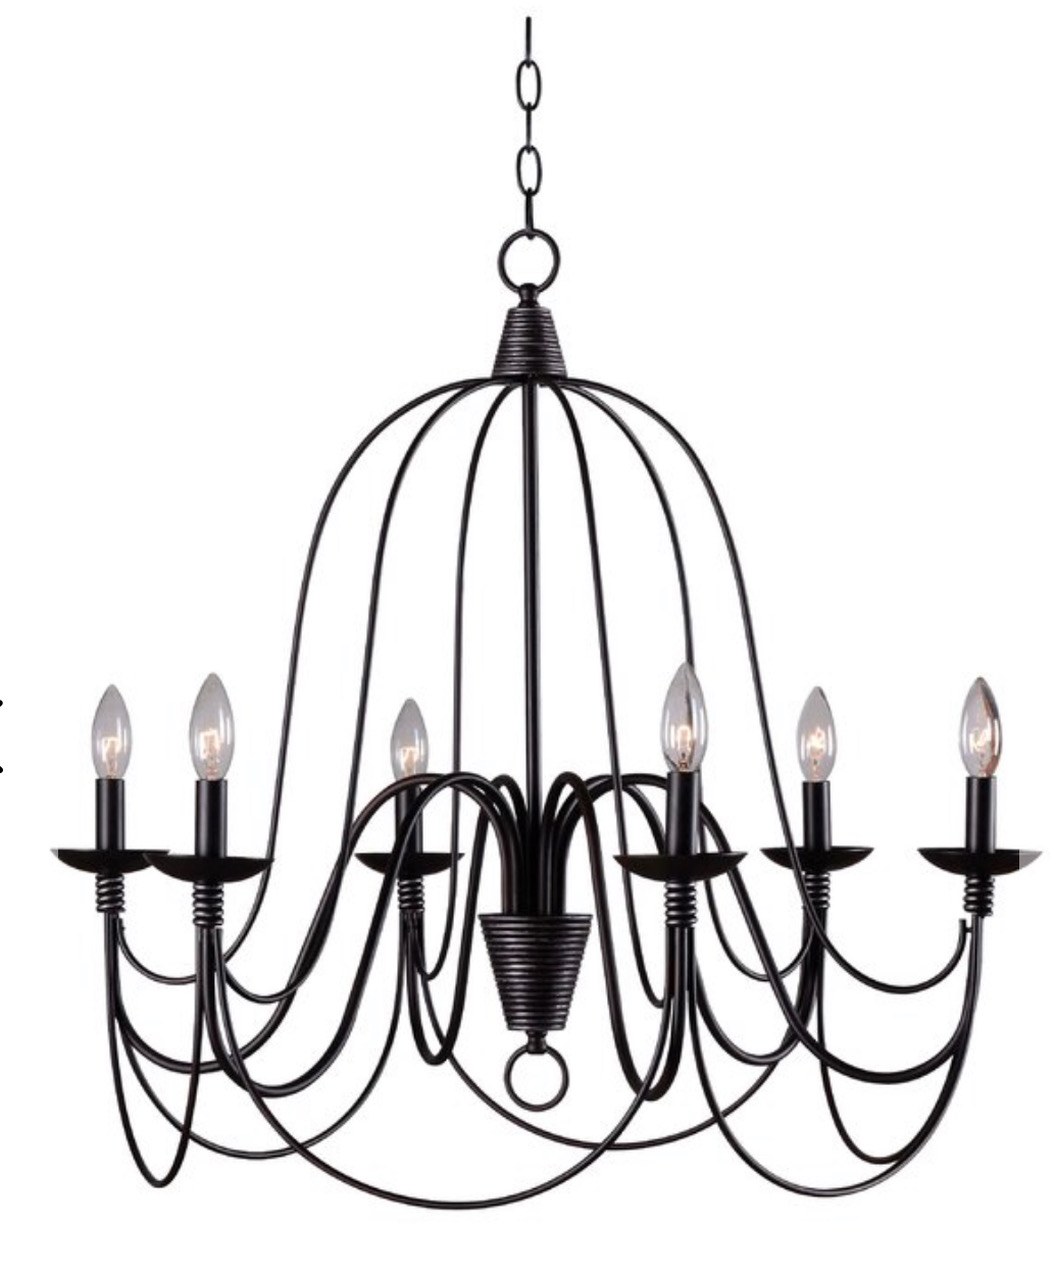 Dining Room: Opelia & Co. Chandelier